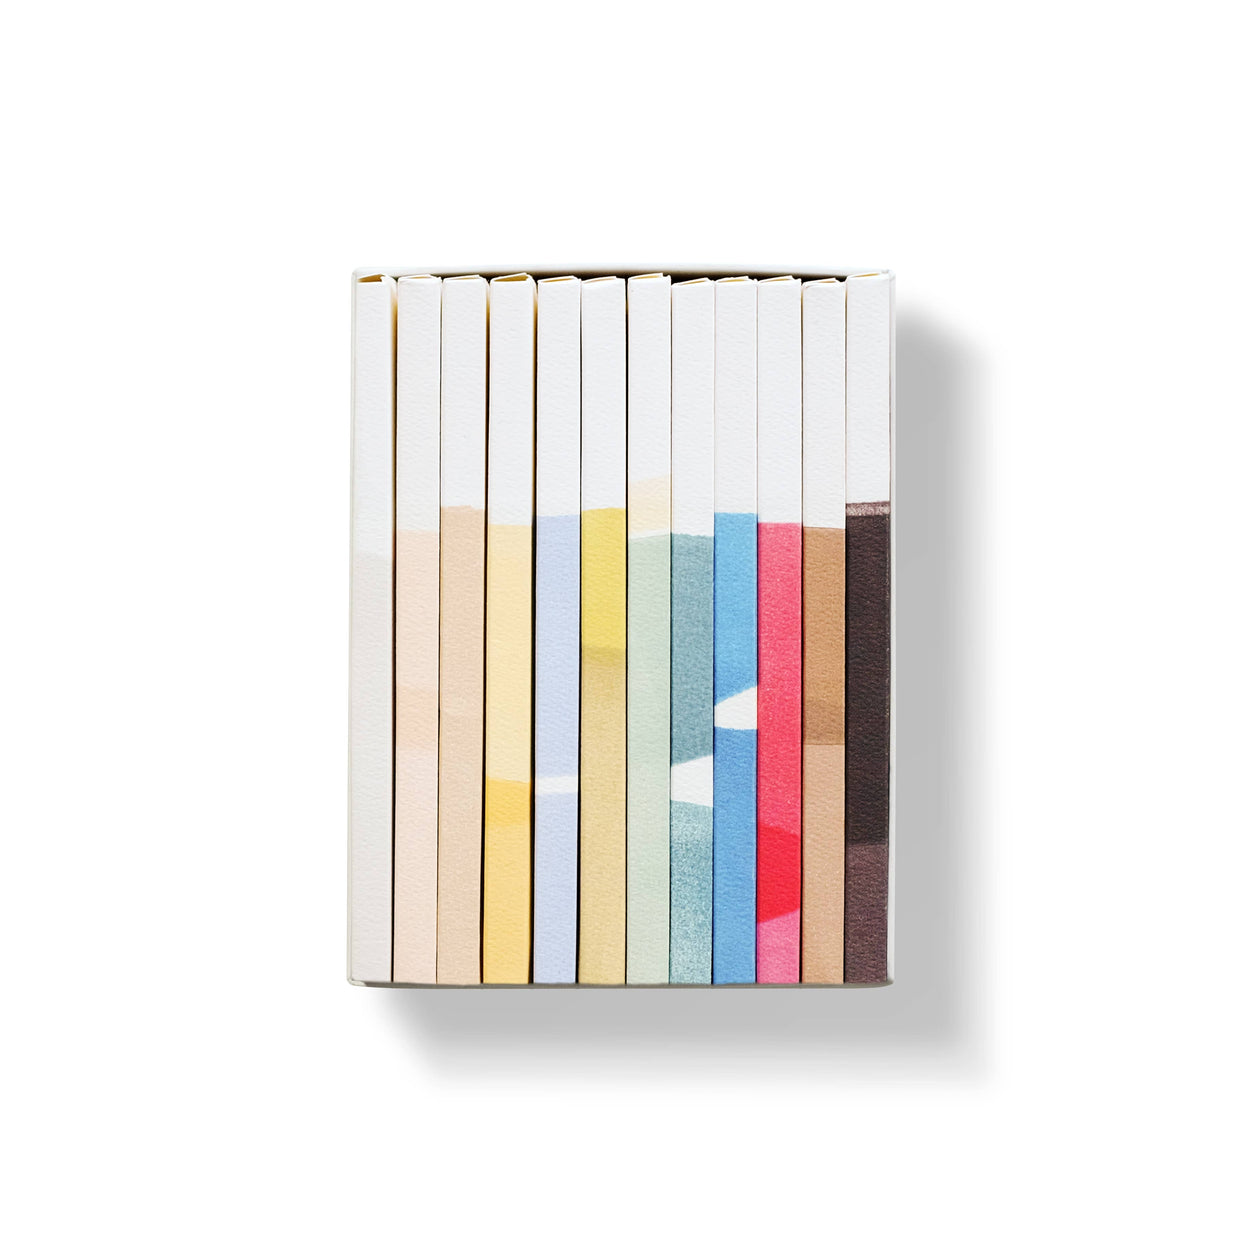 12 Bar Collection Gift Set